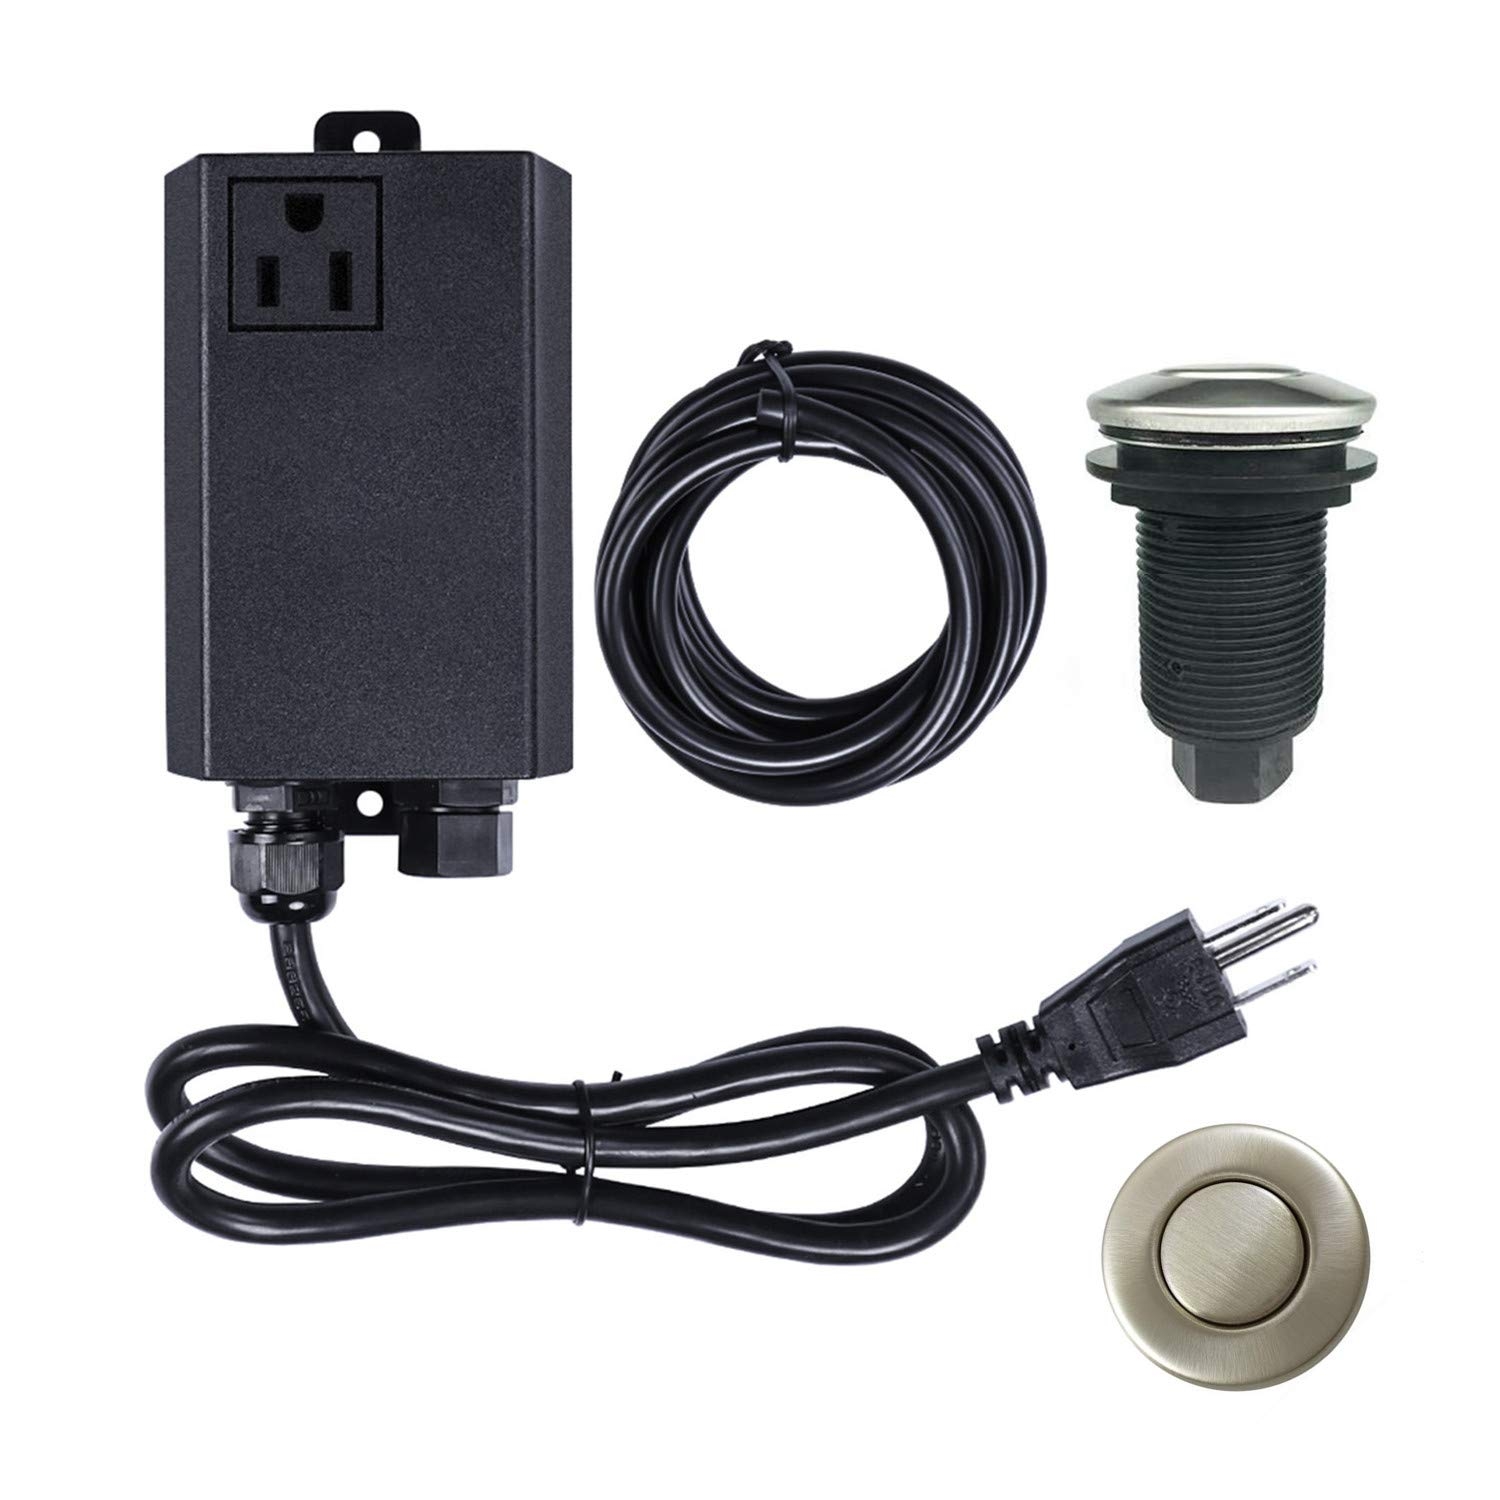 Garbage Disposal Air Switch Kit Sink Top Waste Disposal Stainless Steel On Off Air Button Food And Waste Disposals Part By Et Garbage Disposal Garbage Sink Top